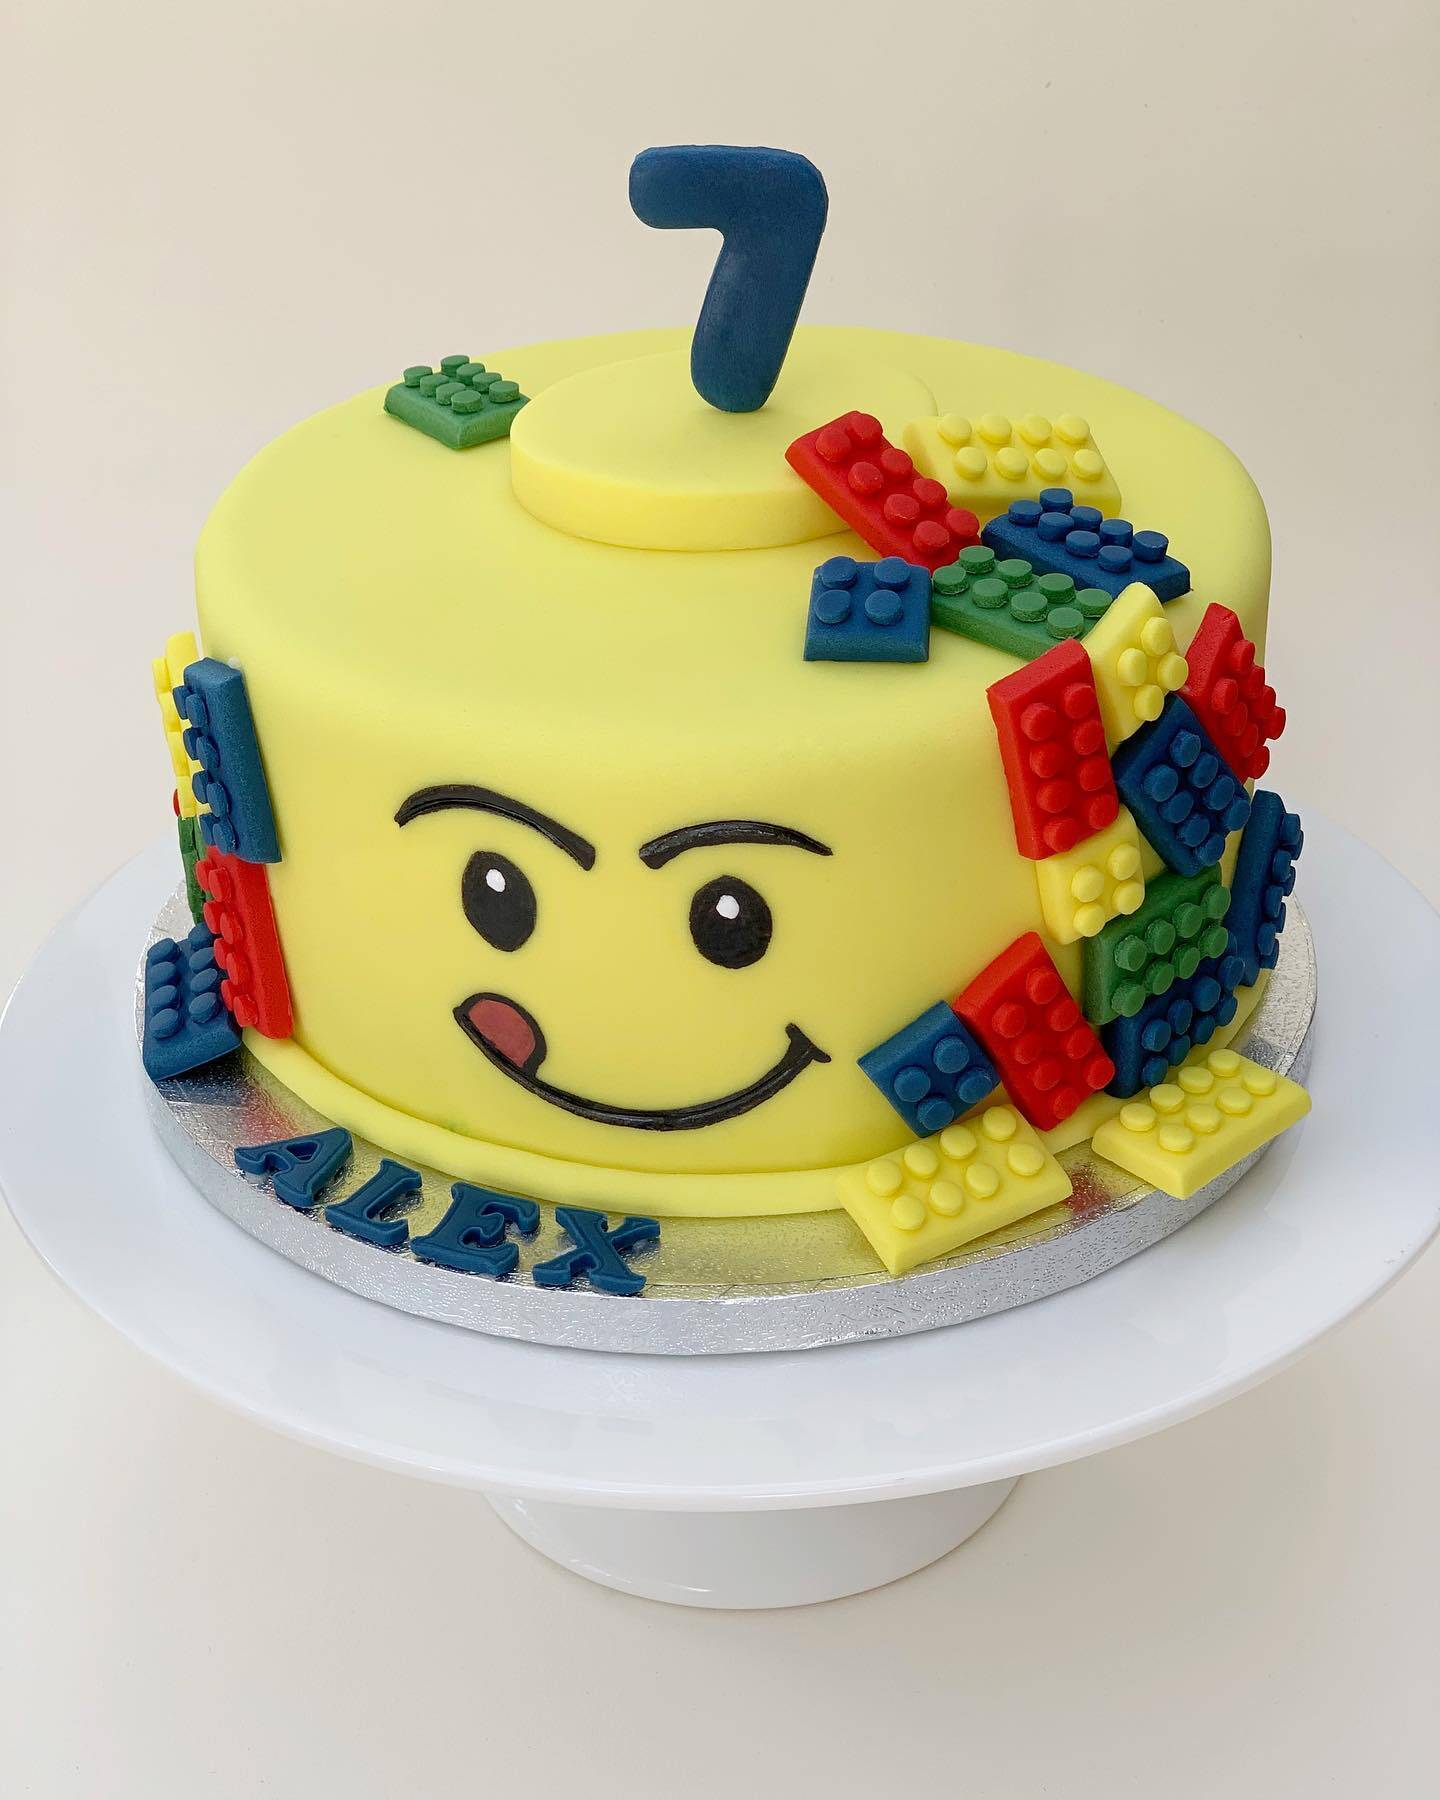 Lego cake, vanilla sponge and Nutella buttercream